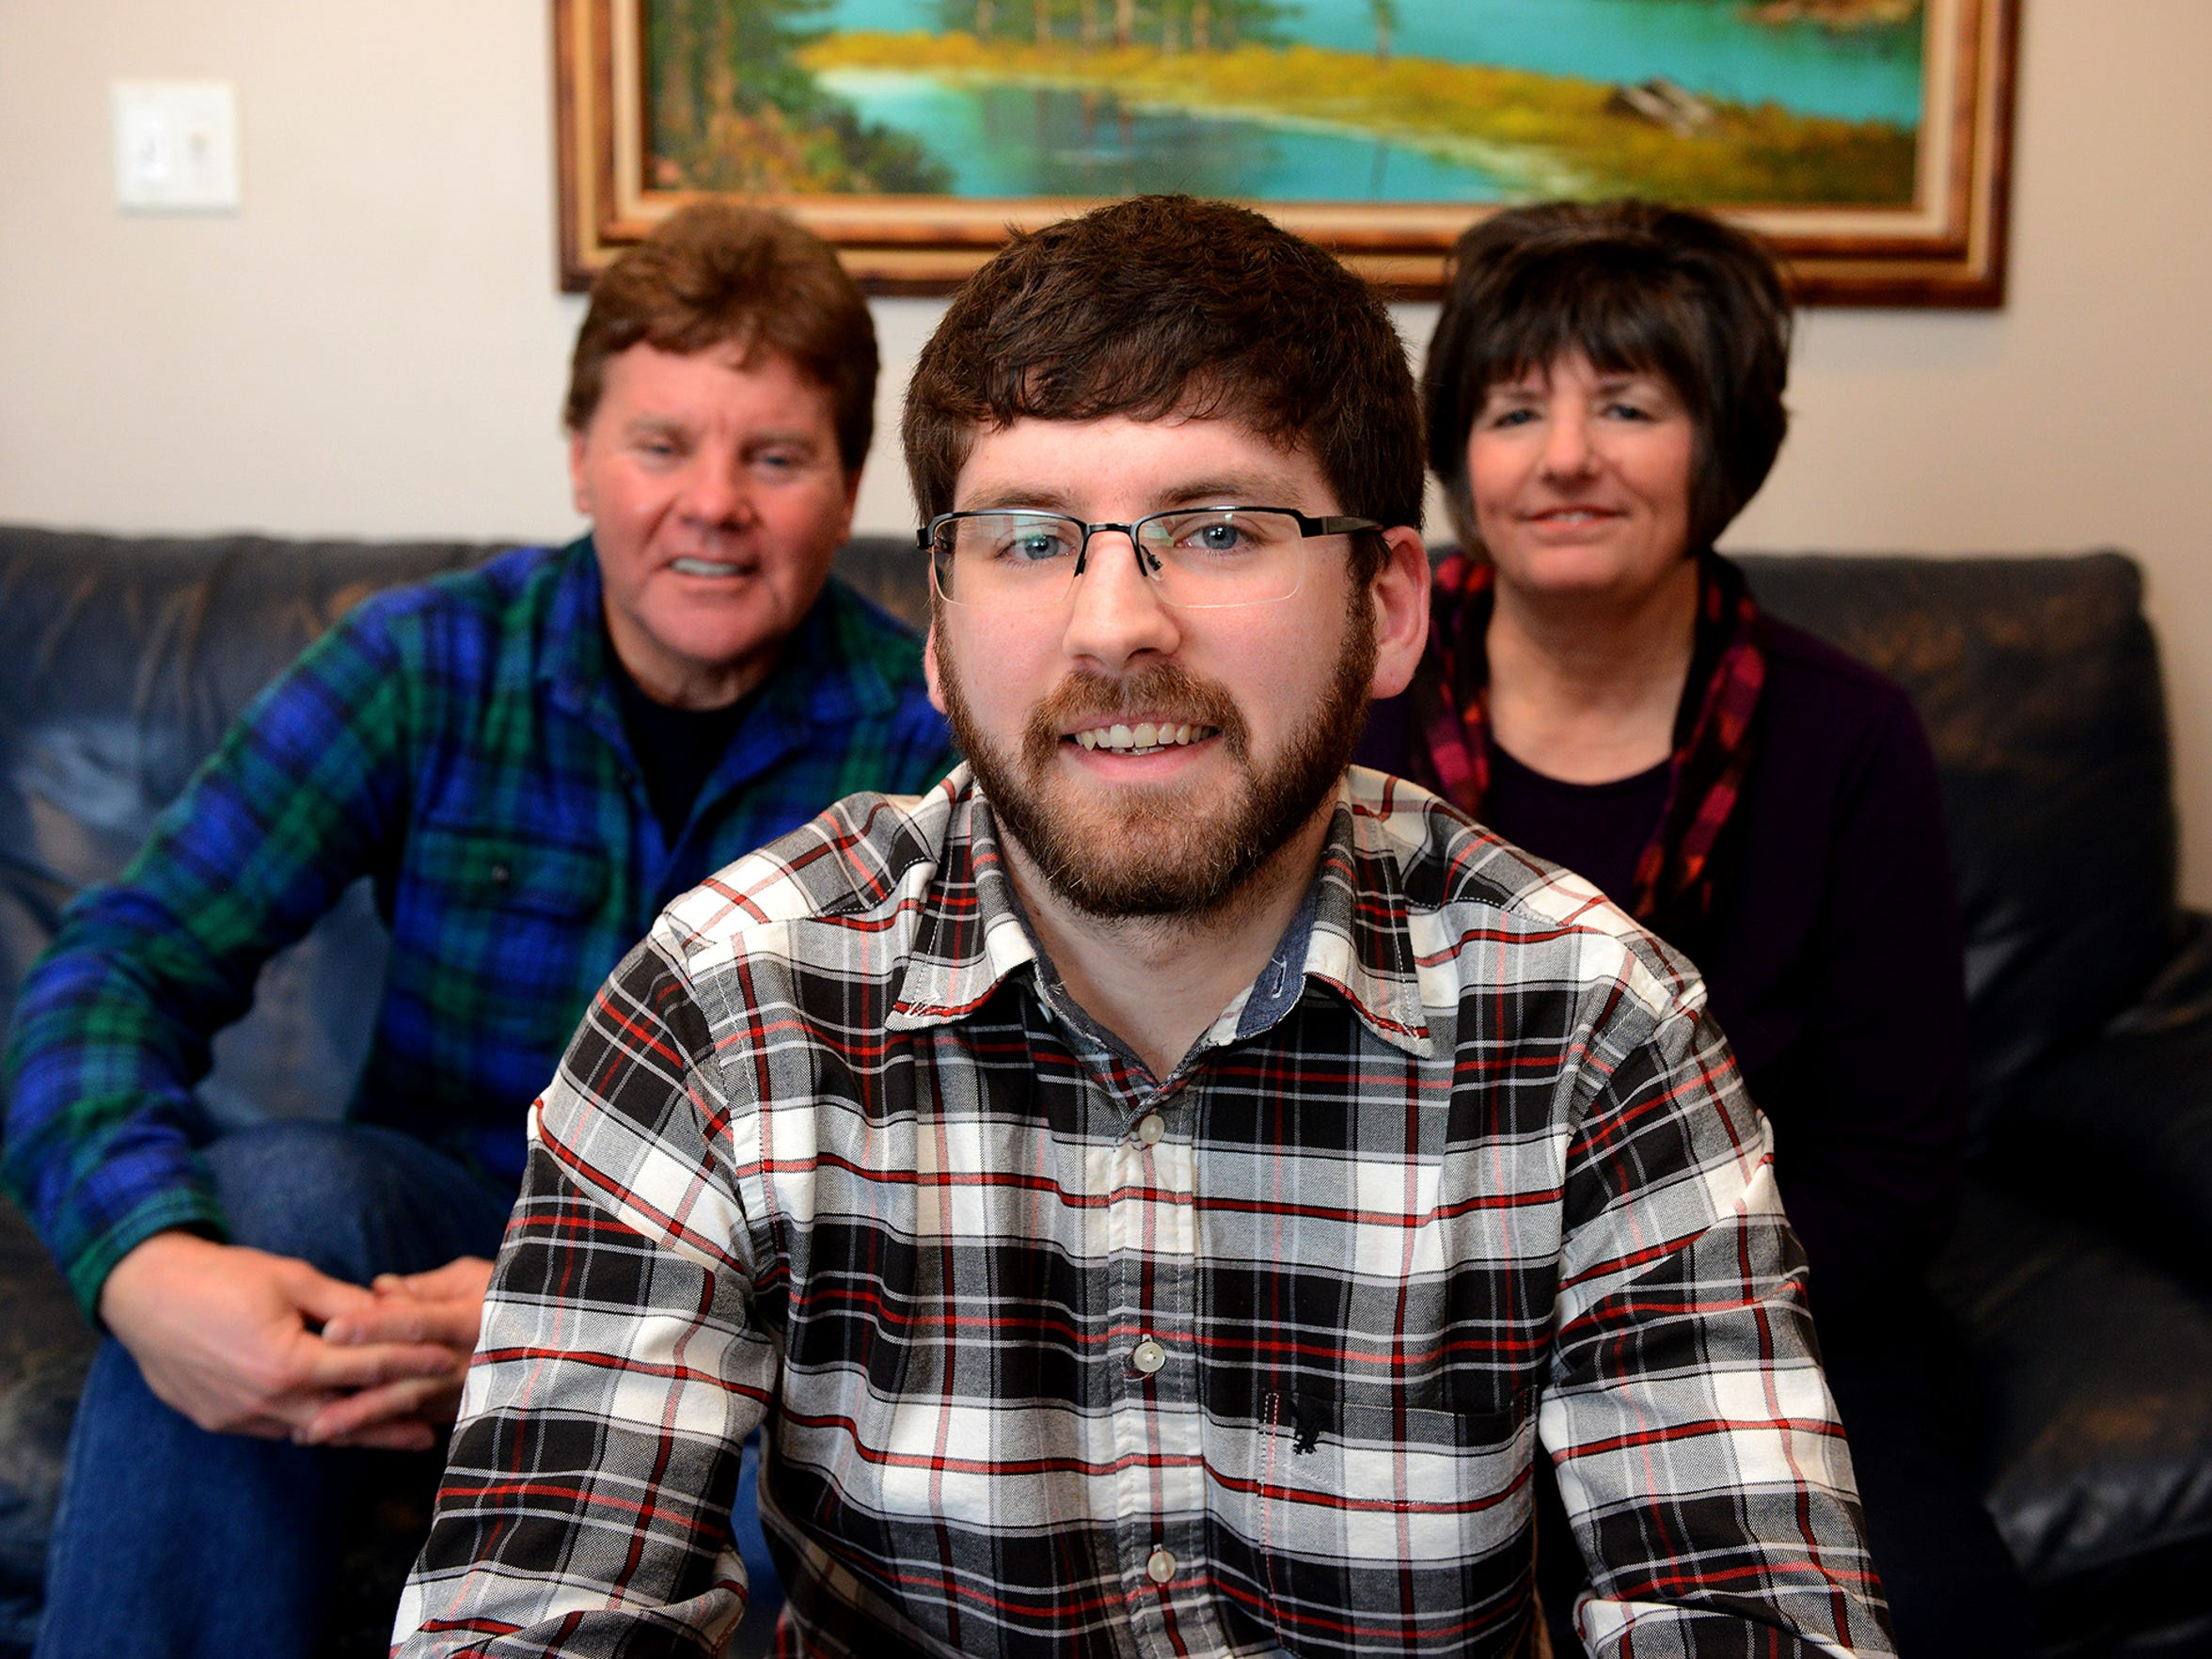 Aaron Emerson, 24, sits with his parents Wes and Rhonda, Wednesday, Jan. 20, 2016, at their home in Mason. Aaron Emerson is in recovery of his heroin addiction. His parents have a prescription for Narcan, an anti-overdose drug, that they keep in the house in case he relapses. Wes is pastor at New Life Fellowship church in Leslie.